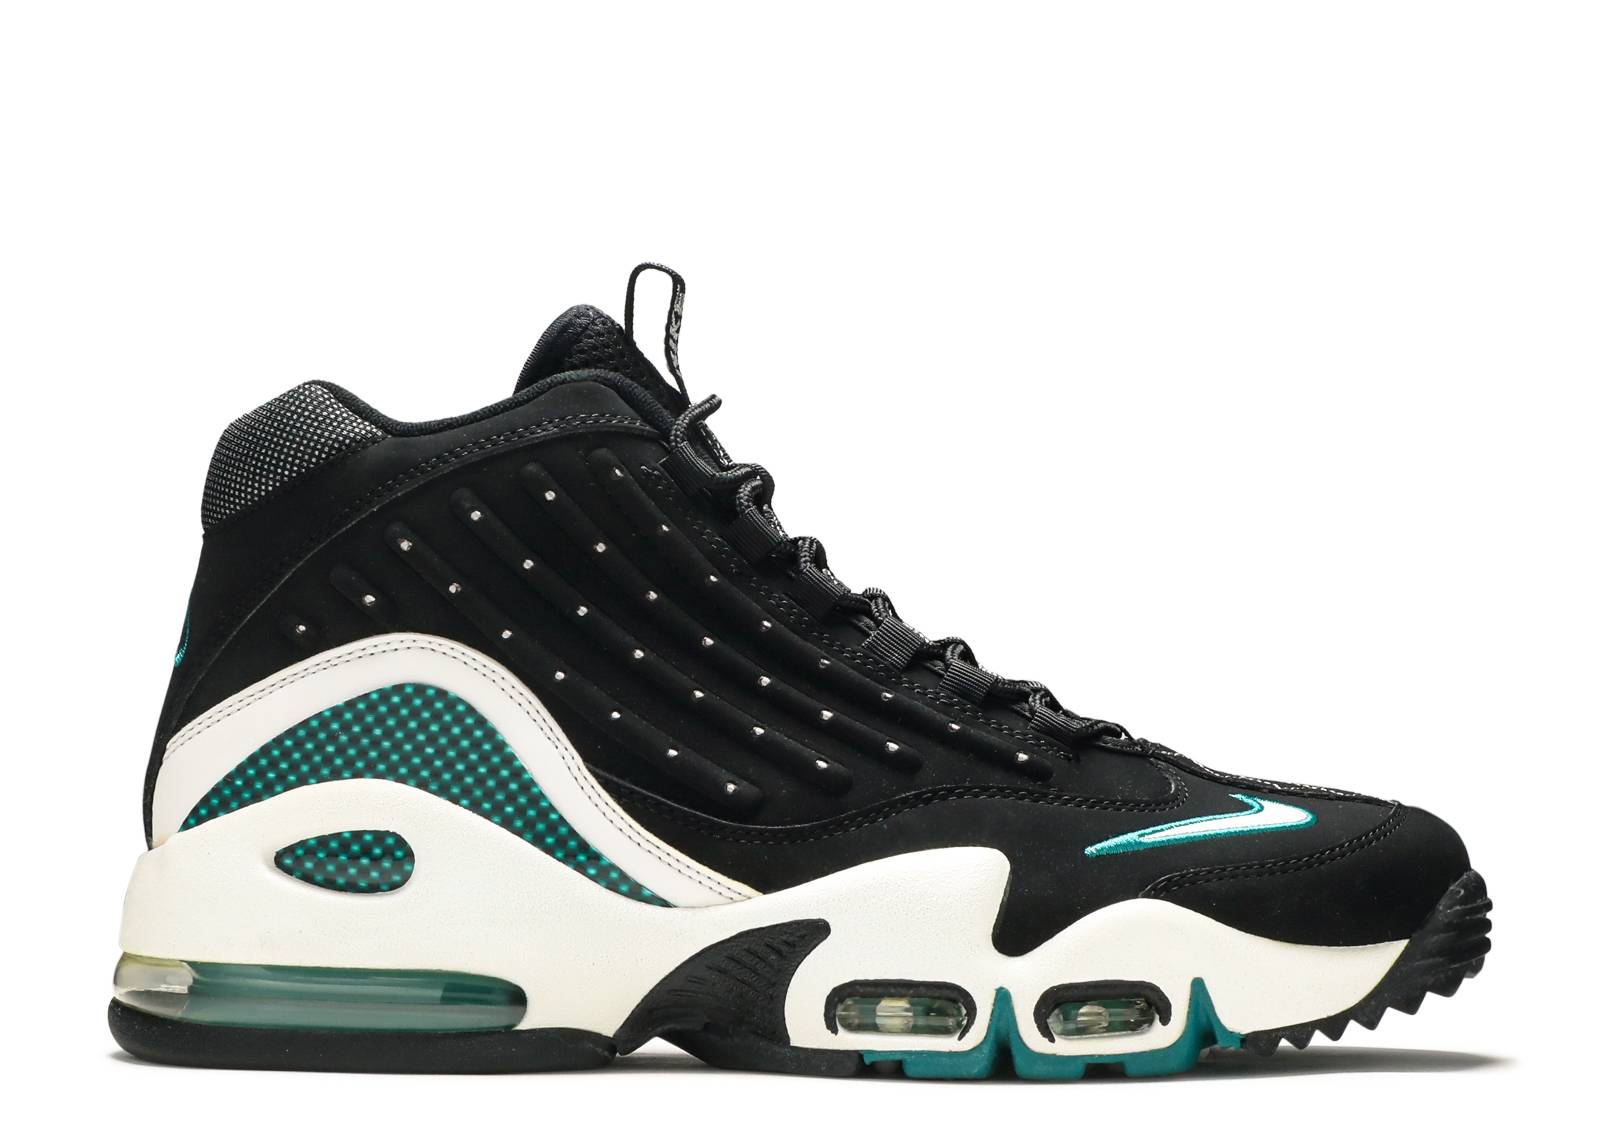 be8cc1cae3 Air Griffey Max 2